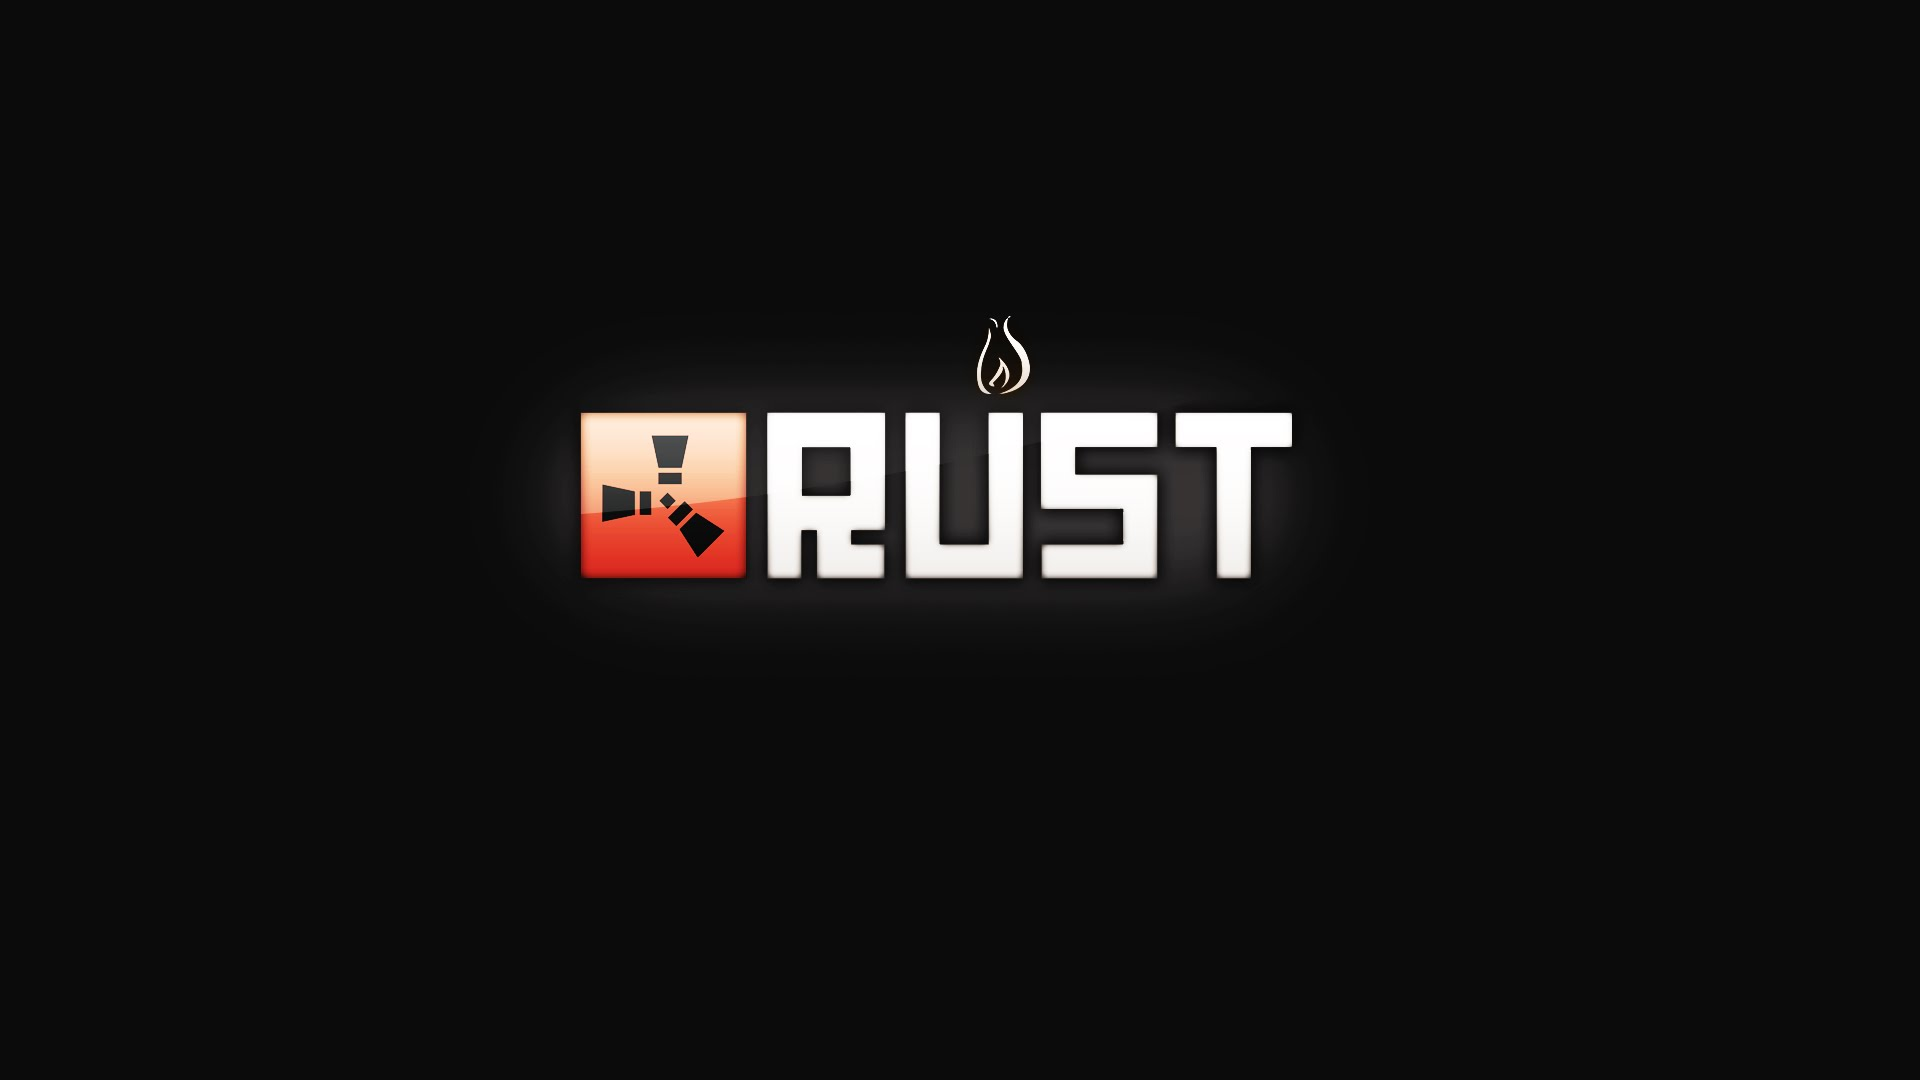 Rust wallpaper 6